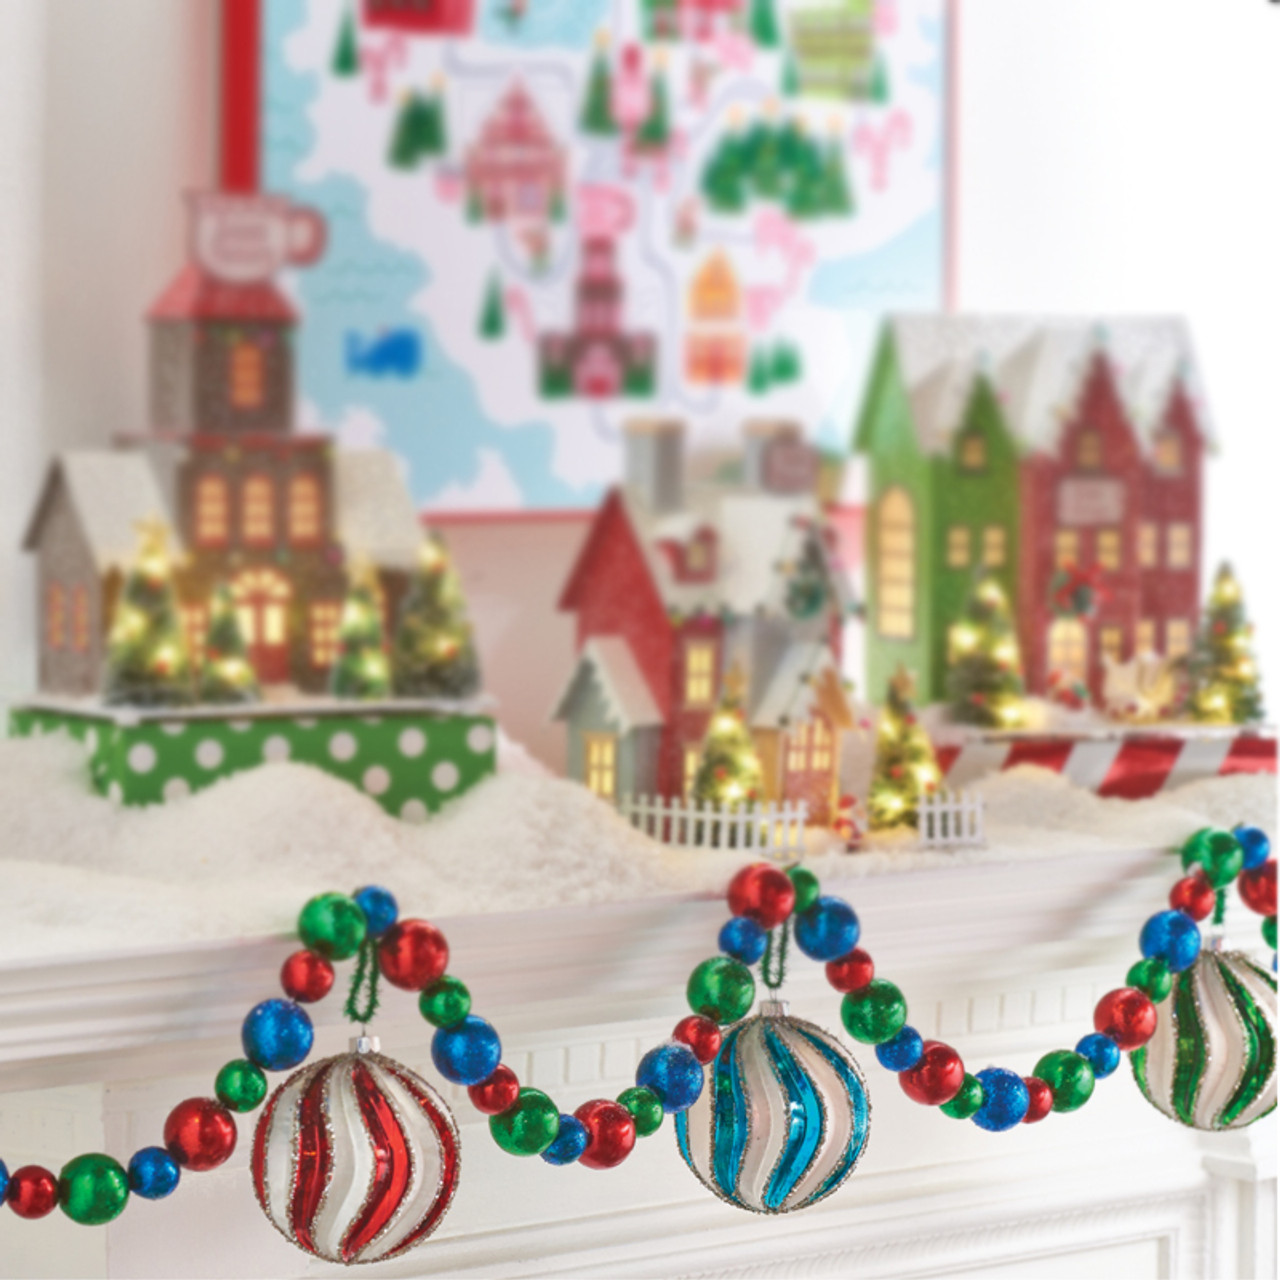 Raz 6 Blue Red And Green Christmas Tree Garland Raz Imports Raz Christmas Christmas Home Decor Christmas Tree Garland Christmas Tree Accessories